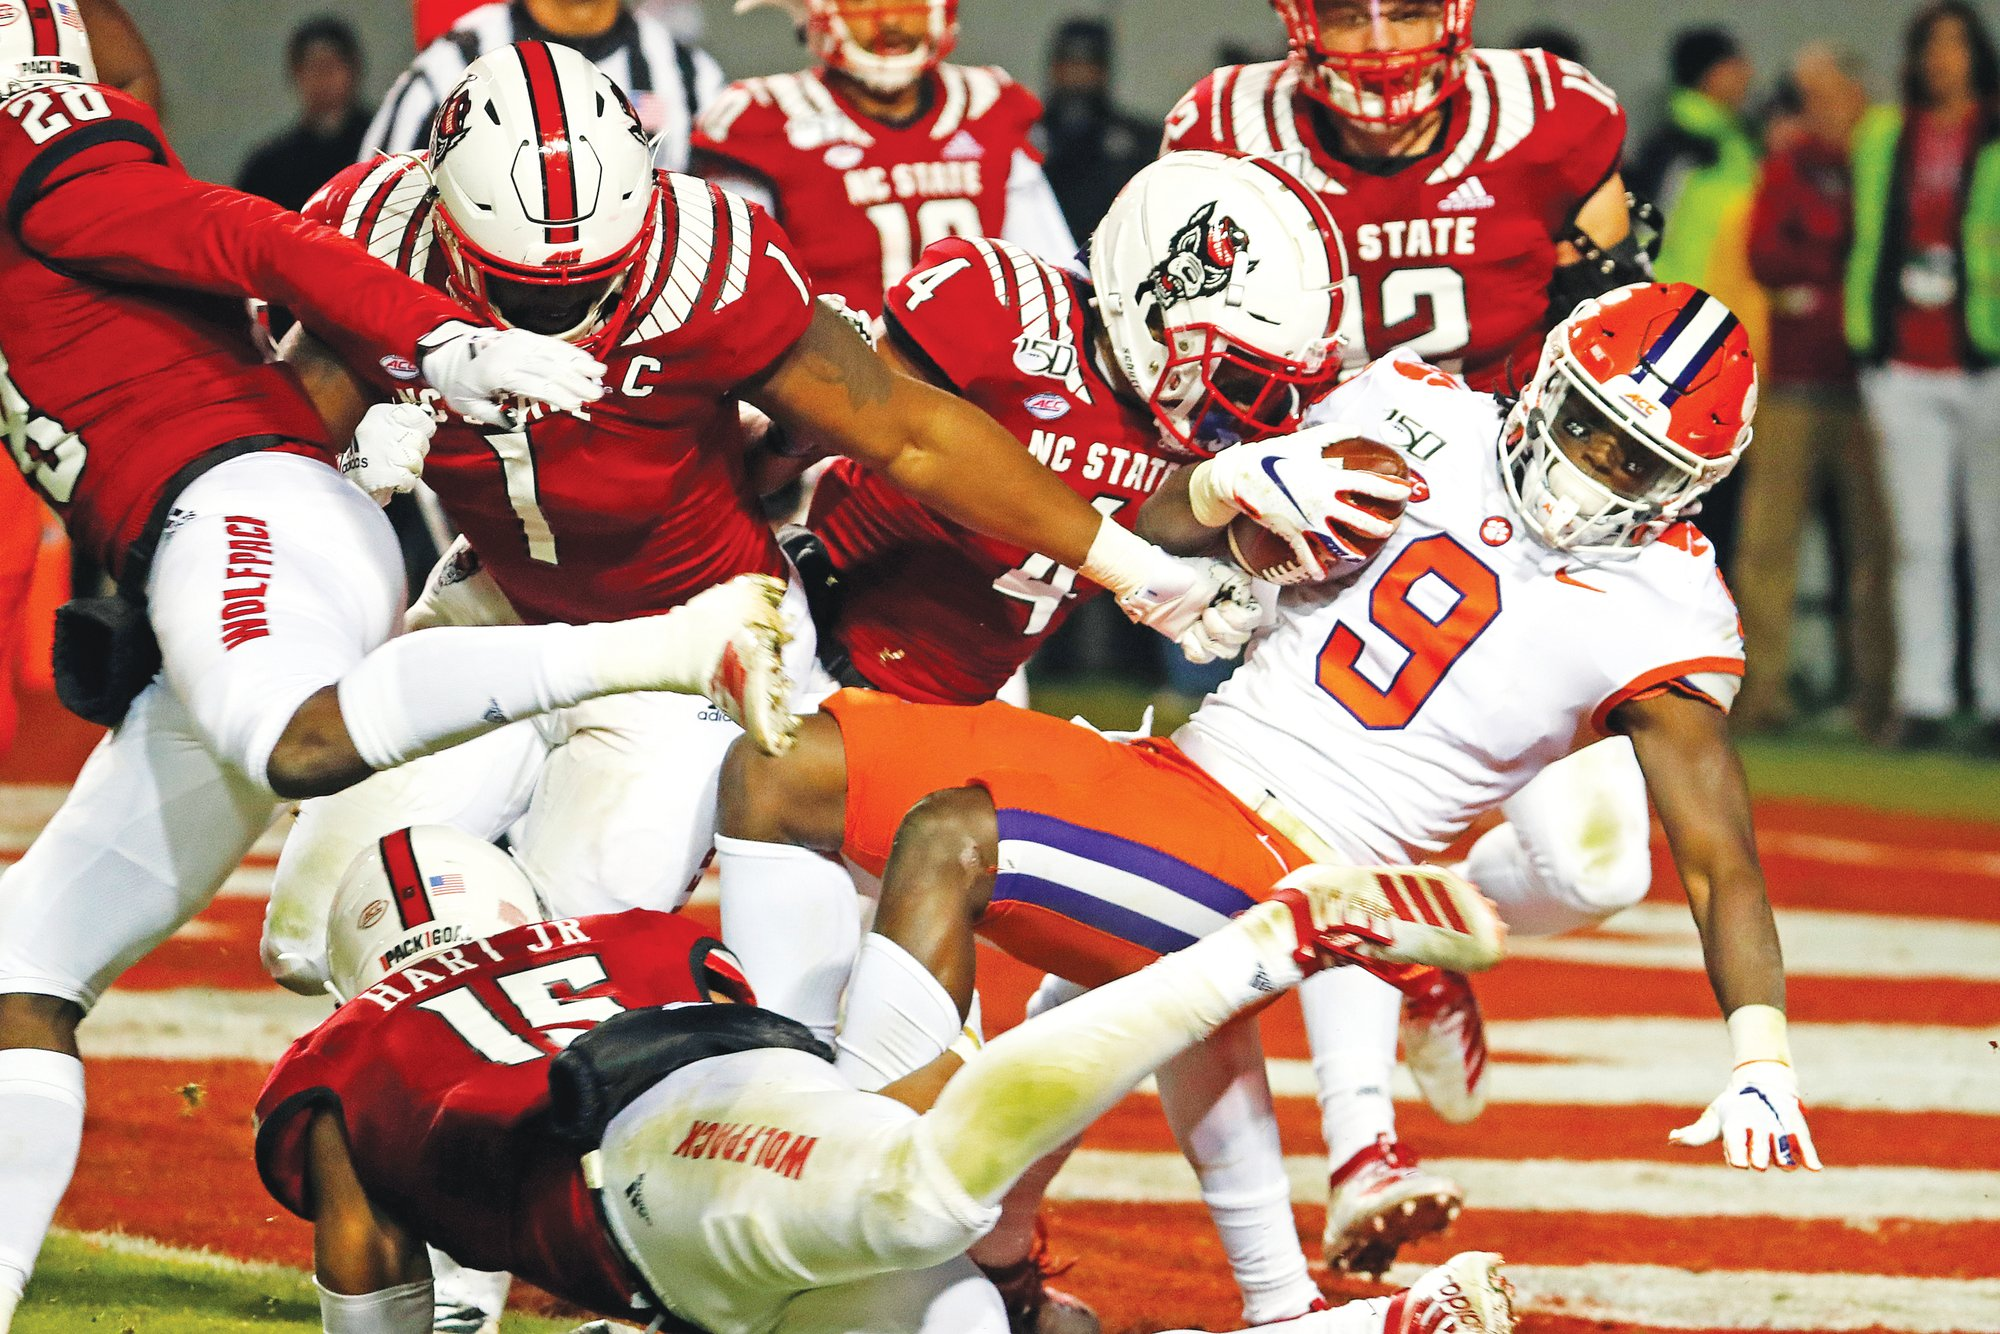 Clemson running back Travis Etienne (9) breaks through against North Carolina State defenders to score during the Tigers' 55-10 win in Raleigh, North Carolina last week. Clemson plays host to Wake Forest on Saturday.